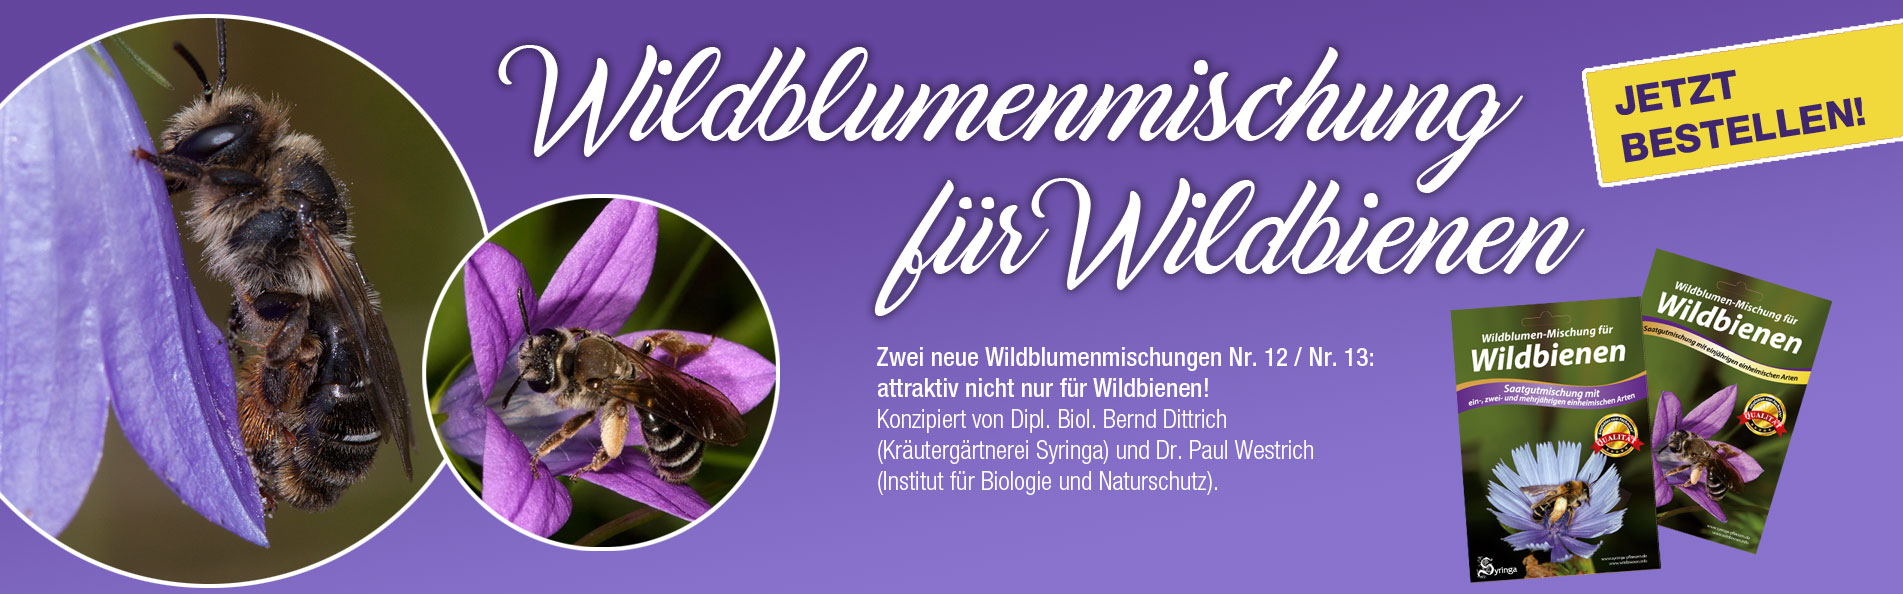 slider_Wildbienen